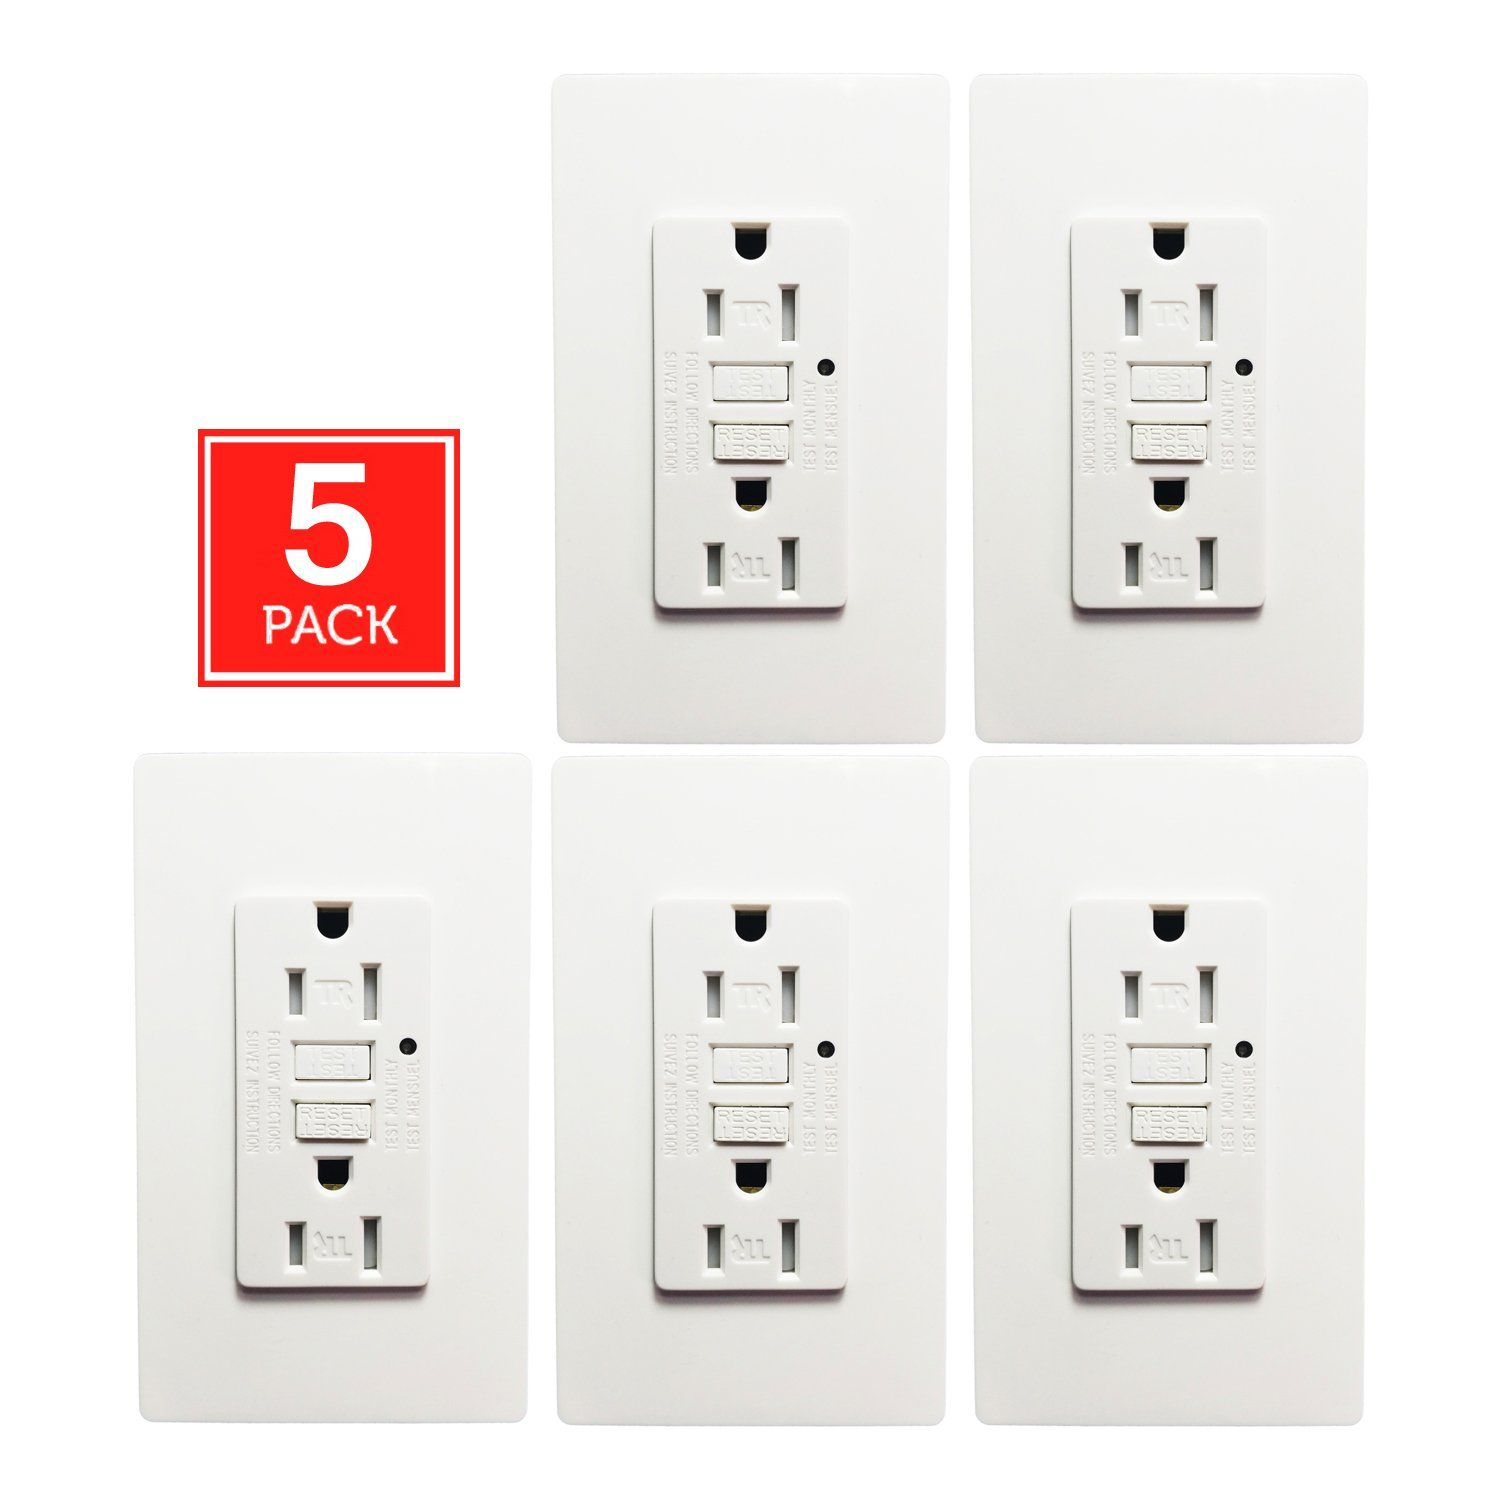 Gfci Wall Outlet Seckatech 15 Amp 125 Volt Tamper Resistant Repair Electrical Receptacle With Indicator Light